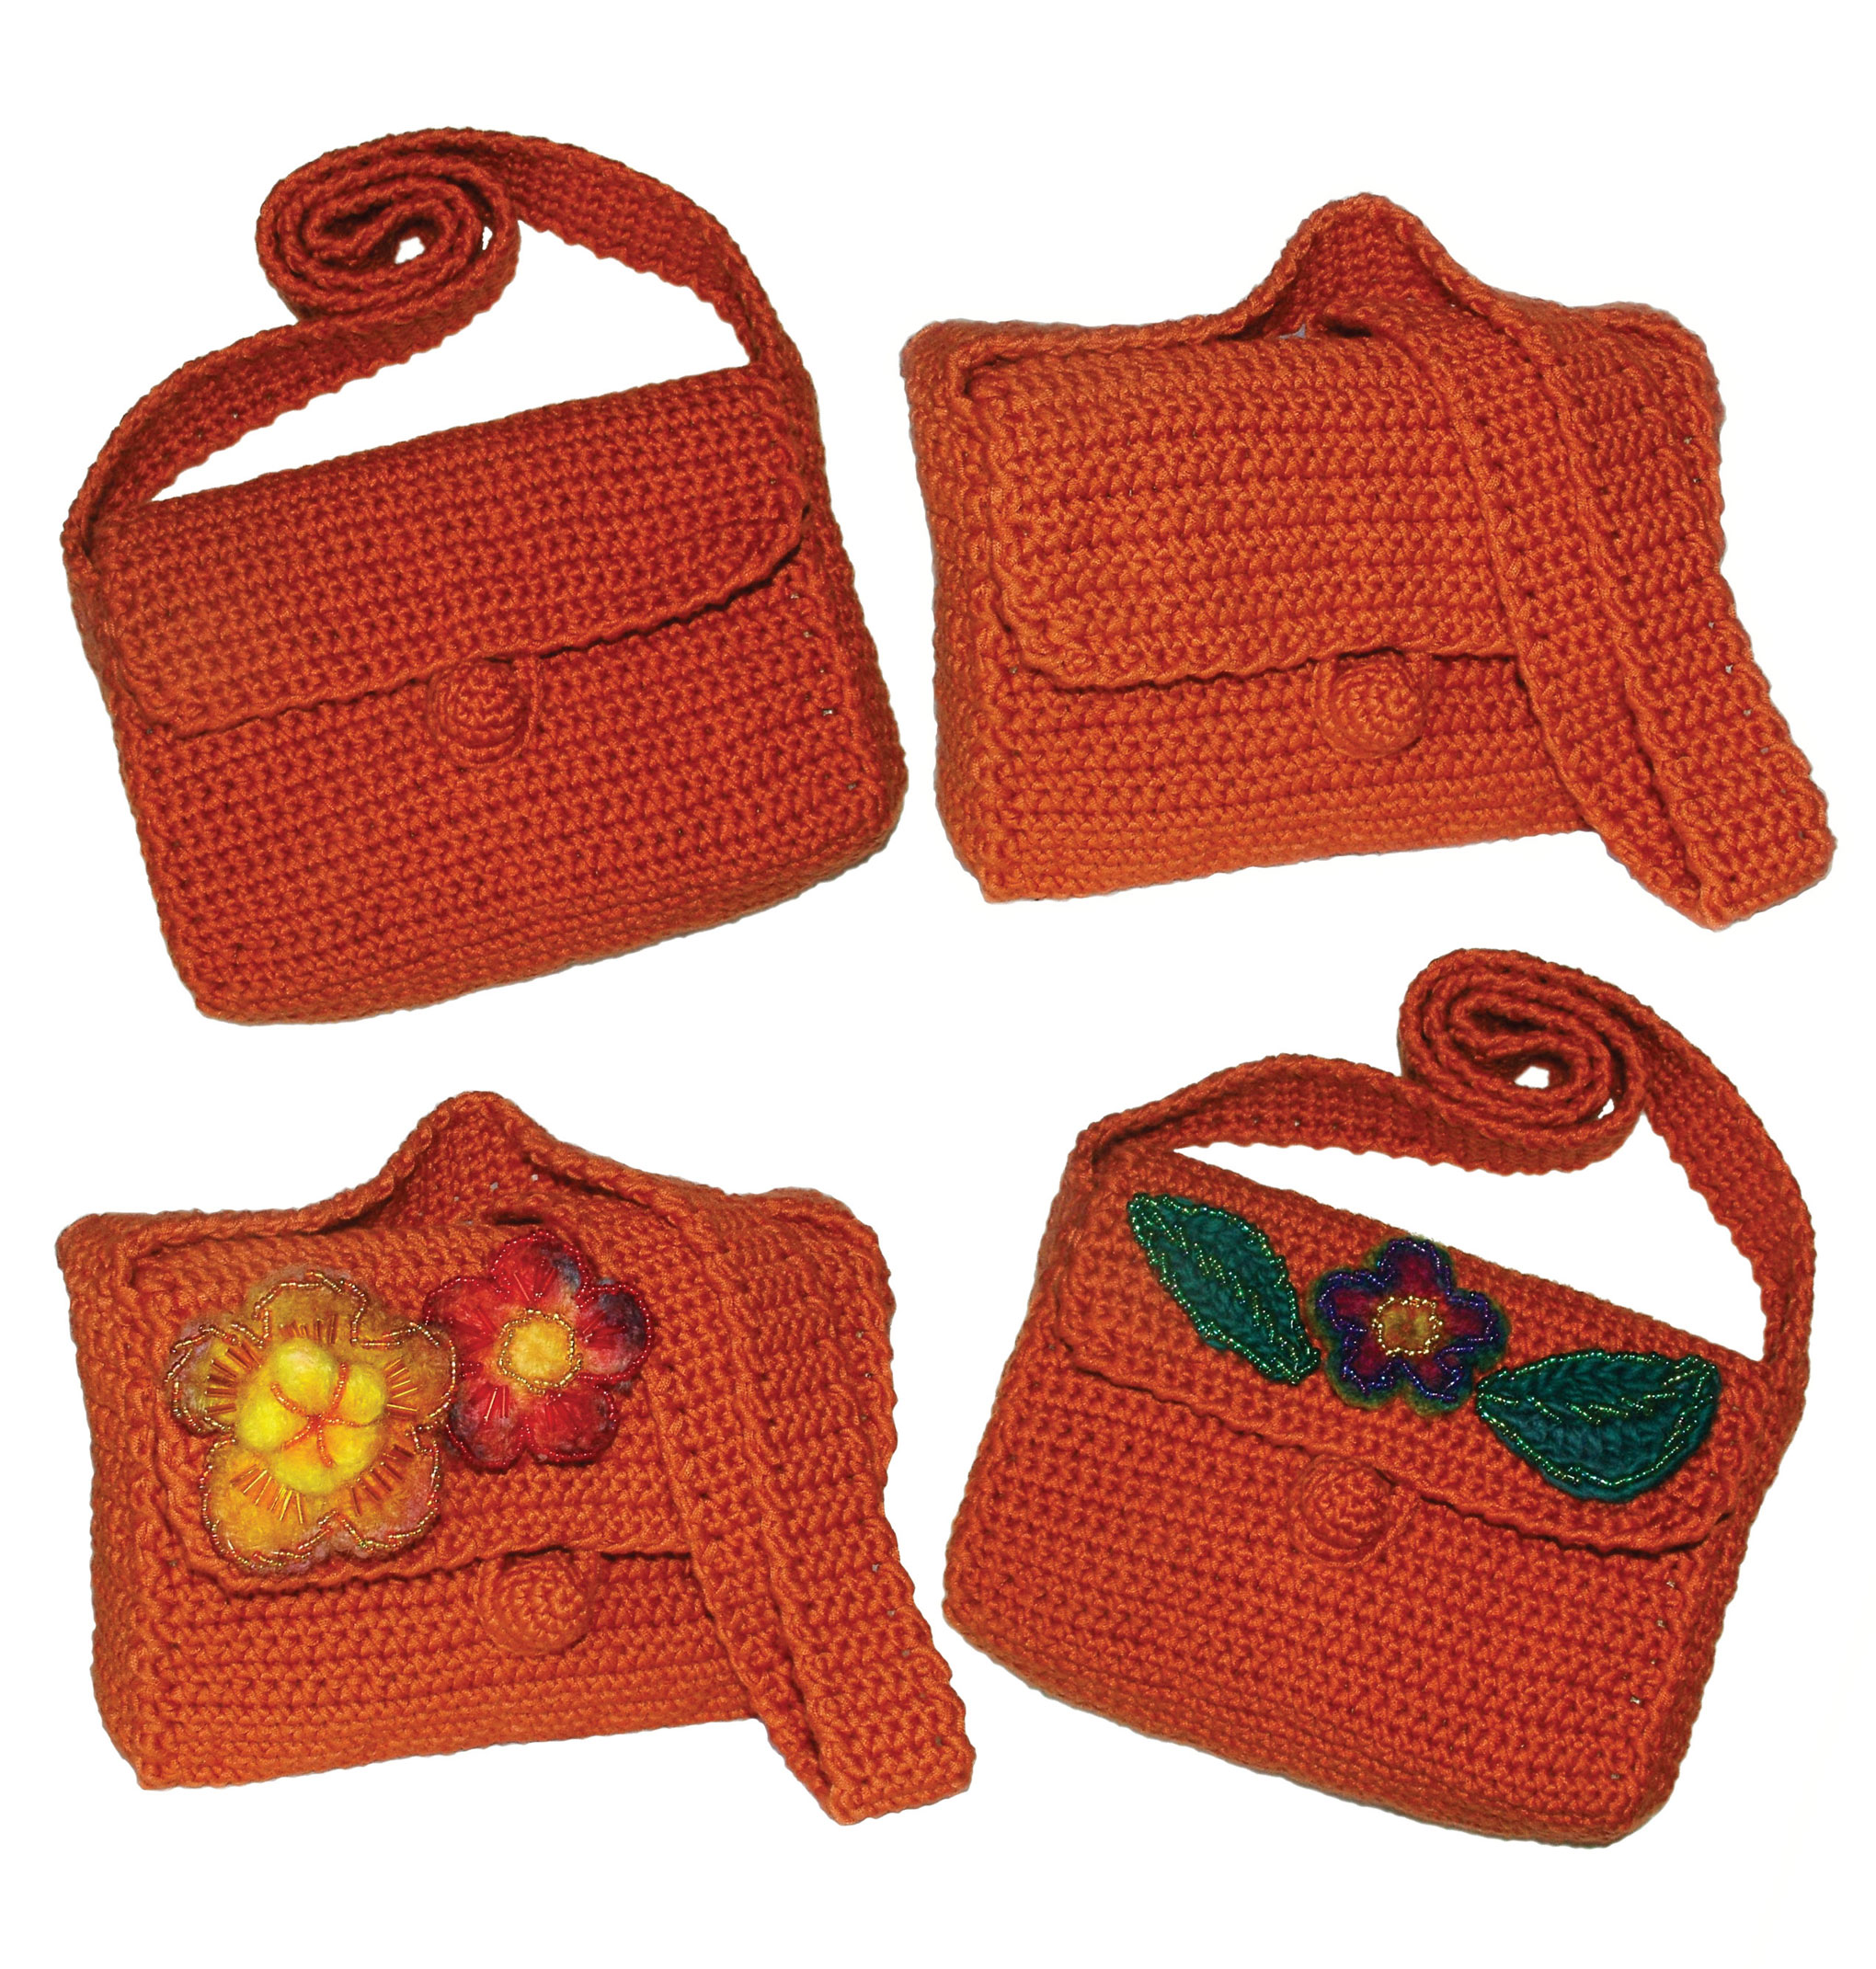 Easy Basic Crochet Bag/Purse Pattern